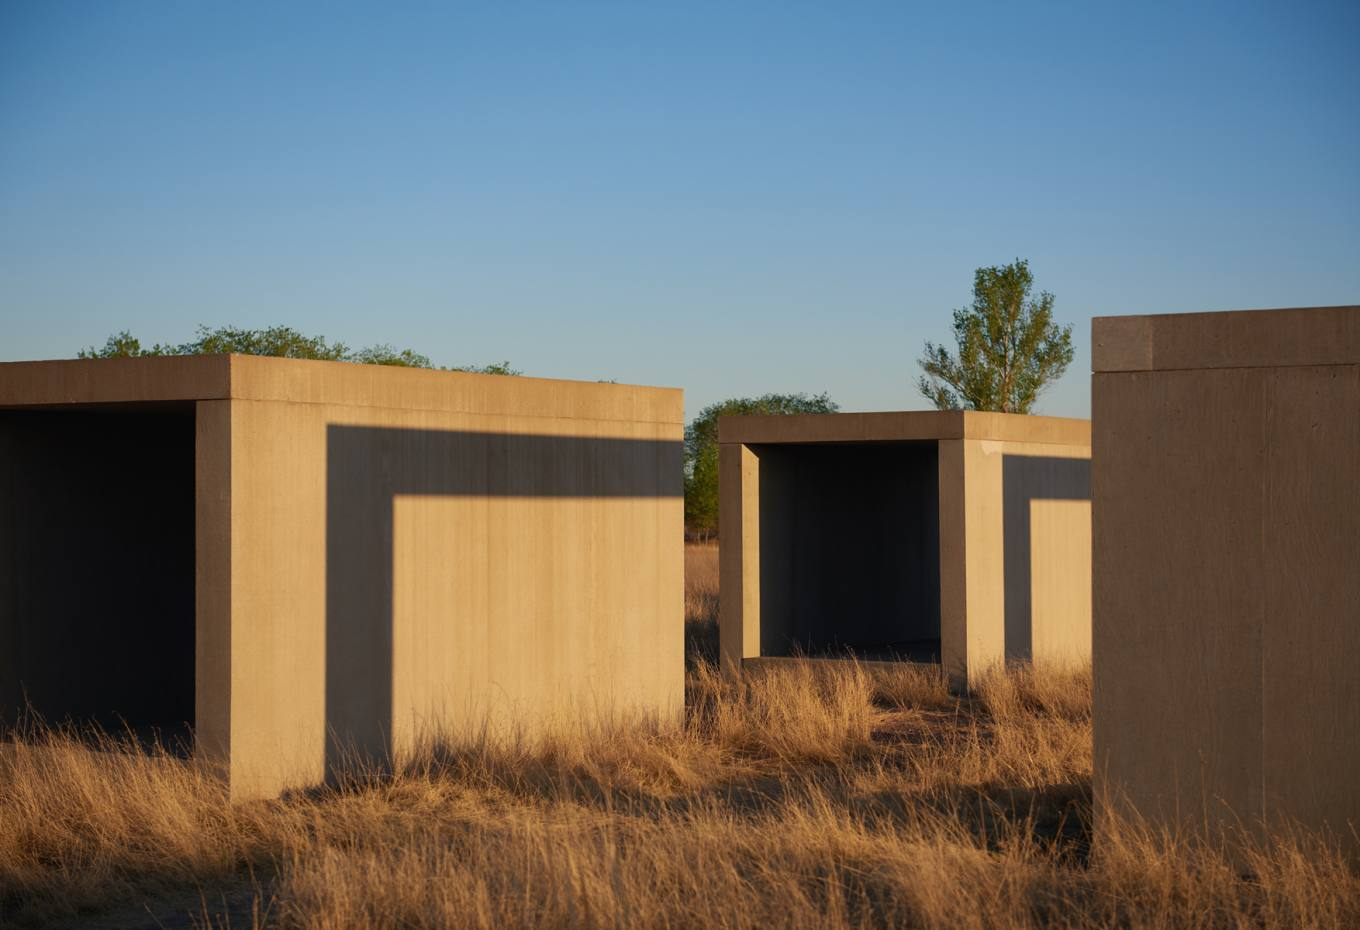 Untitled works by Donald Judd in Marfa, Texas